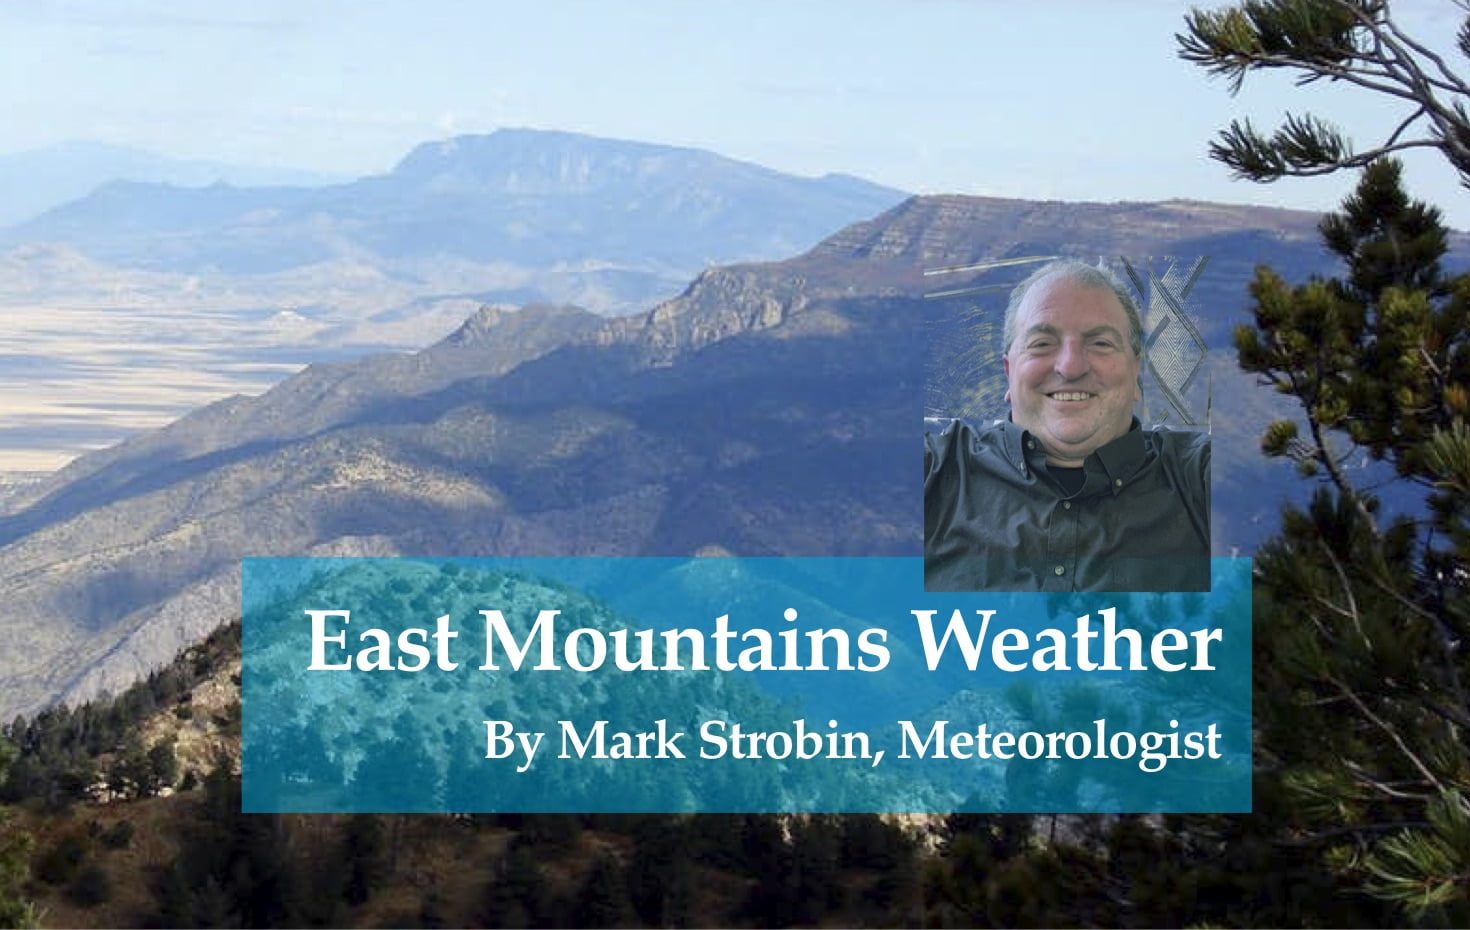 About the National Weather Service, Part 1